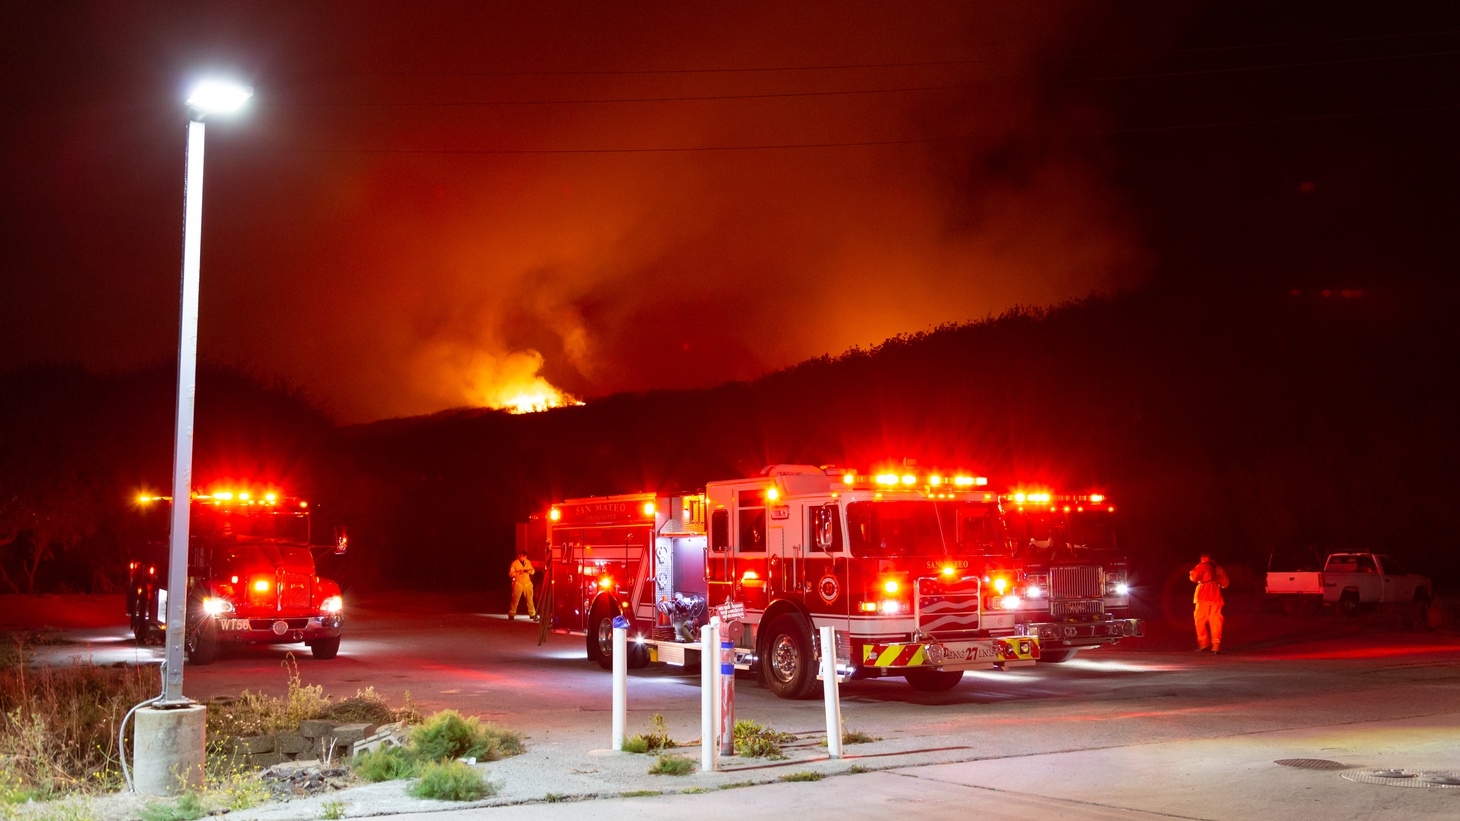 Wildland Firefighters on the scene of the Cabrillo Fire near Butano State Park, October 24 2019.